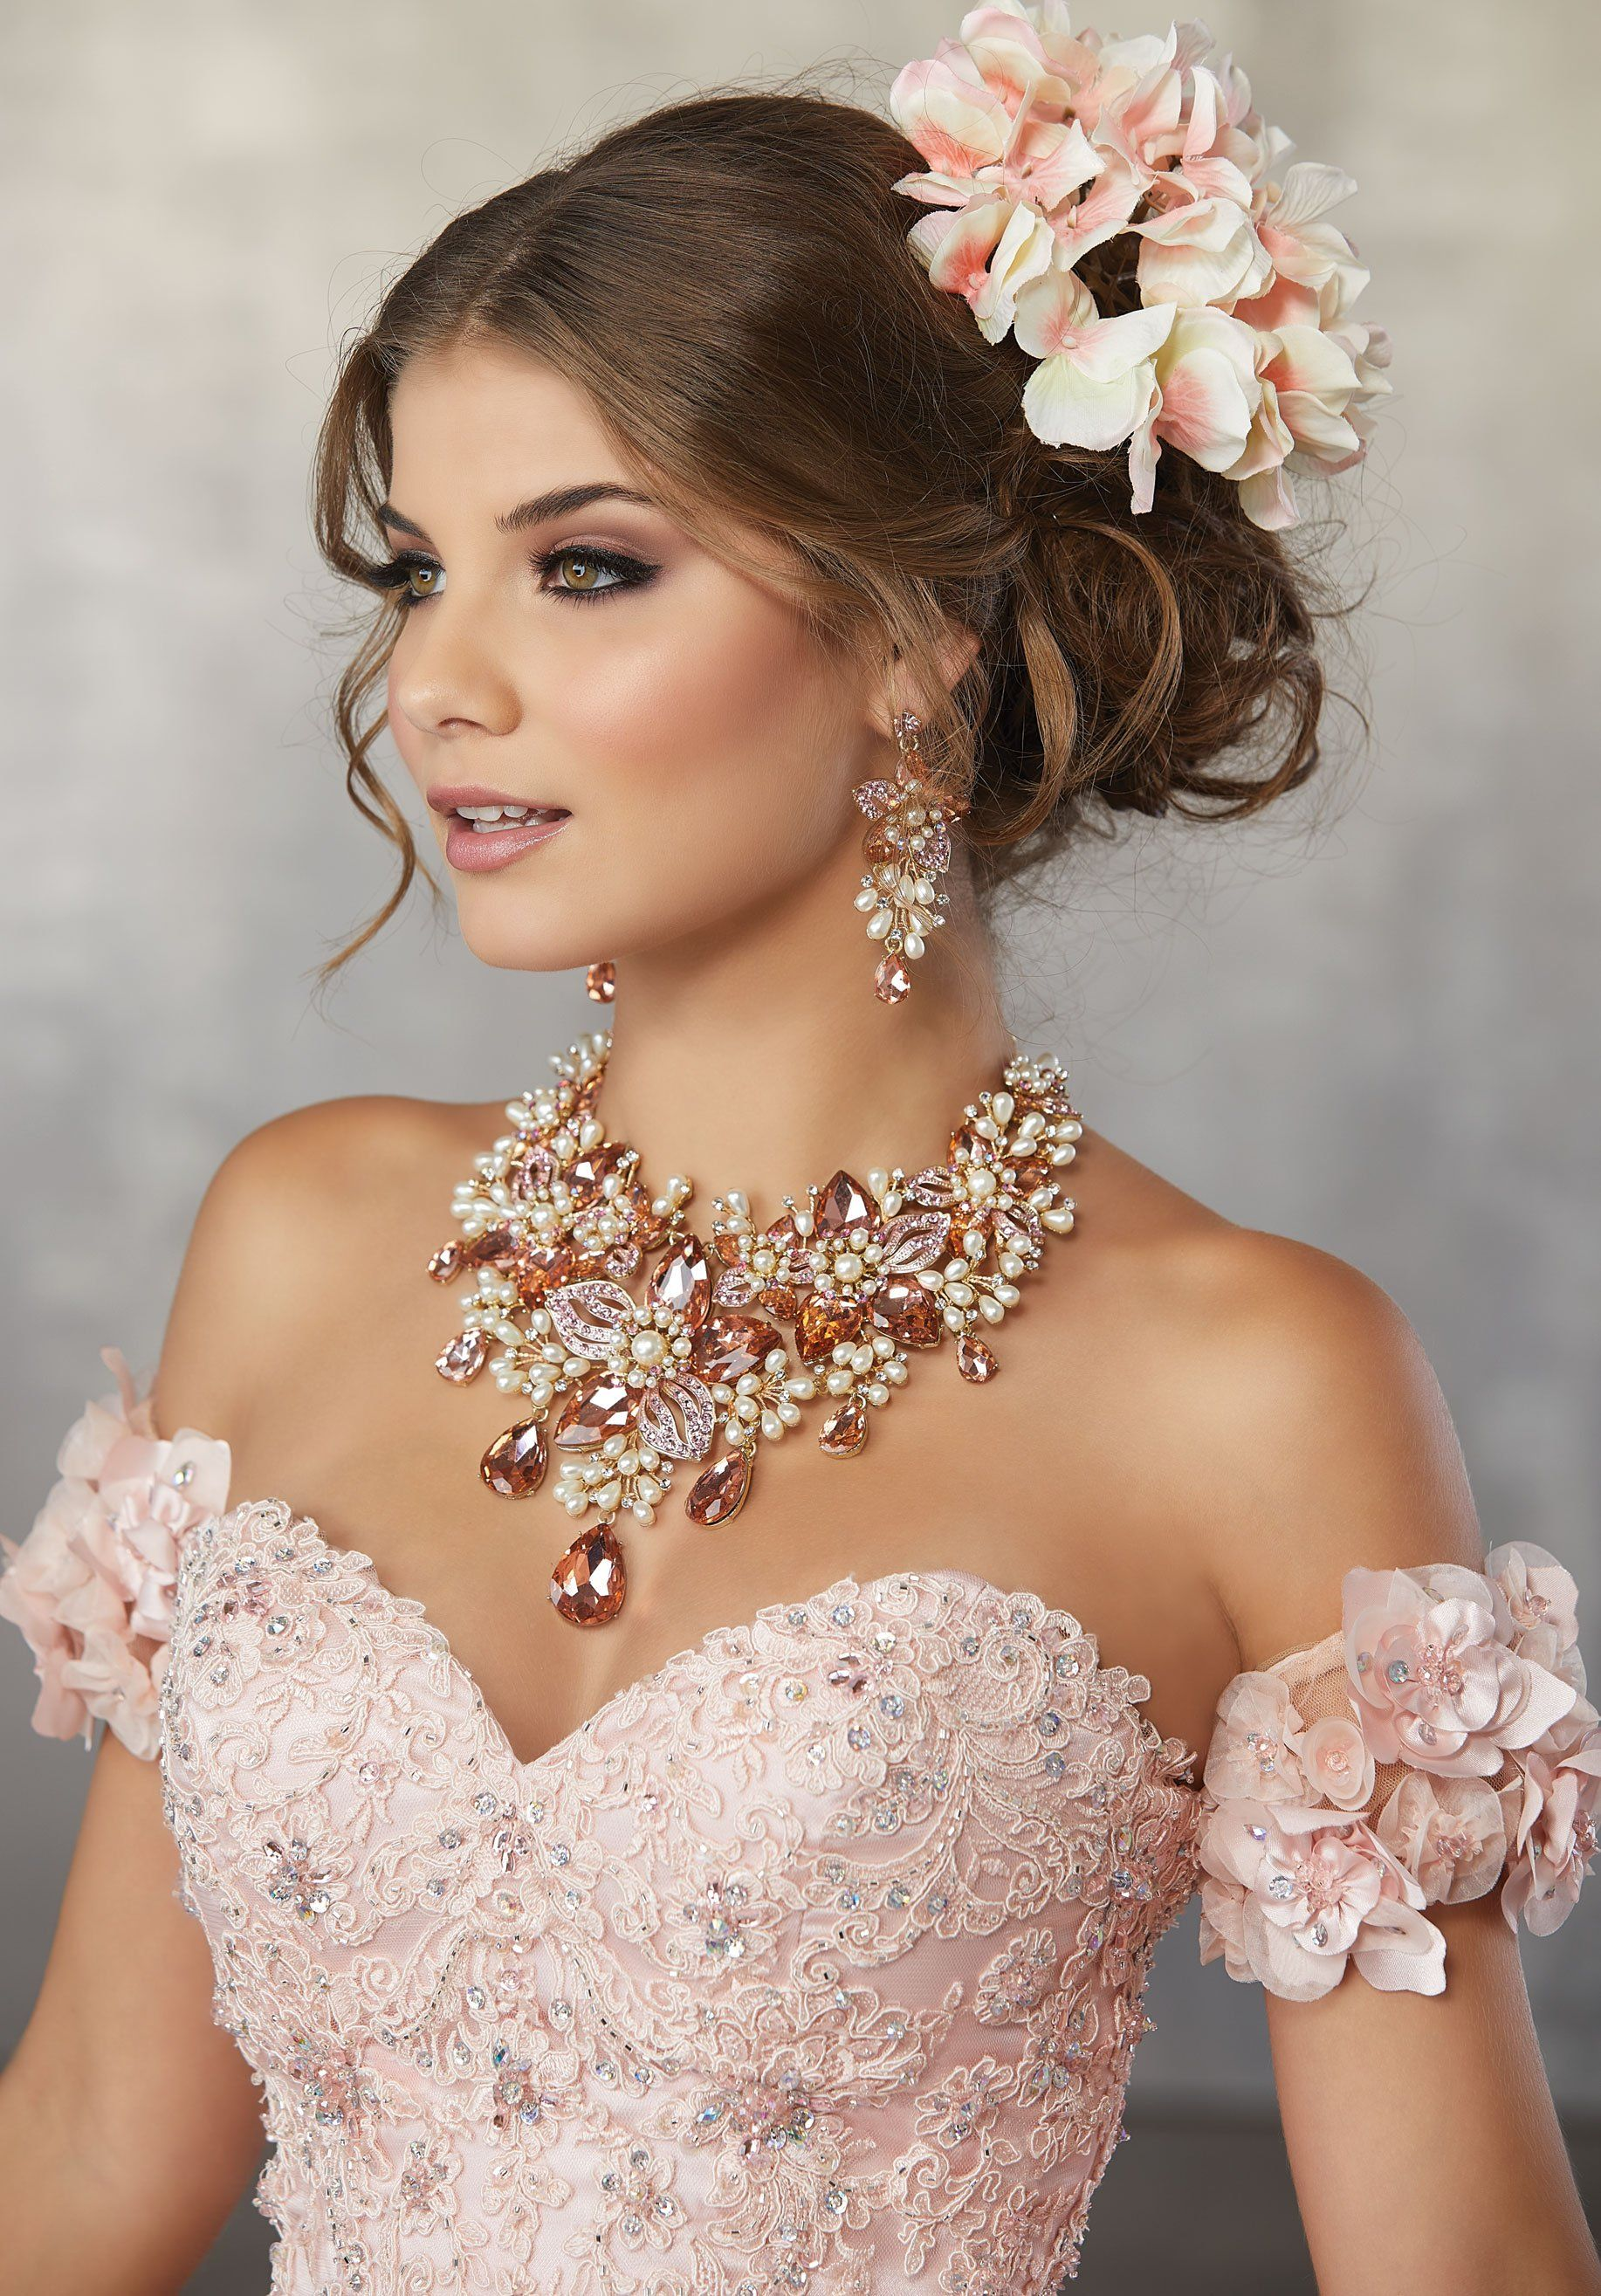 bcf220f685b 78063 Crystal Beaded Quinceanera Dress with Lace Appliqués and  Three-Dimensional Flowers